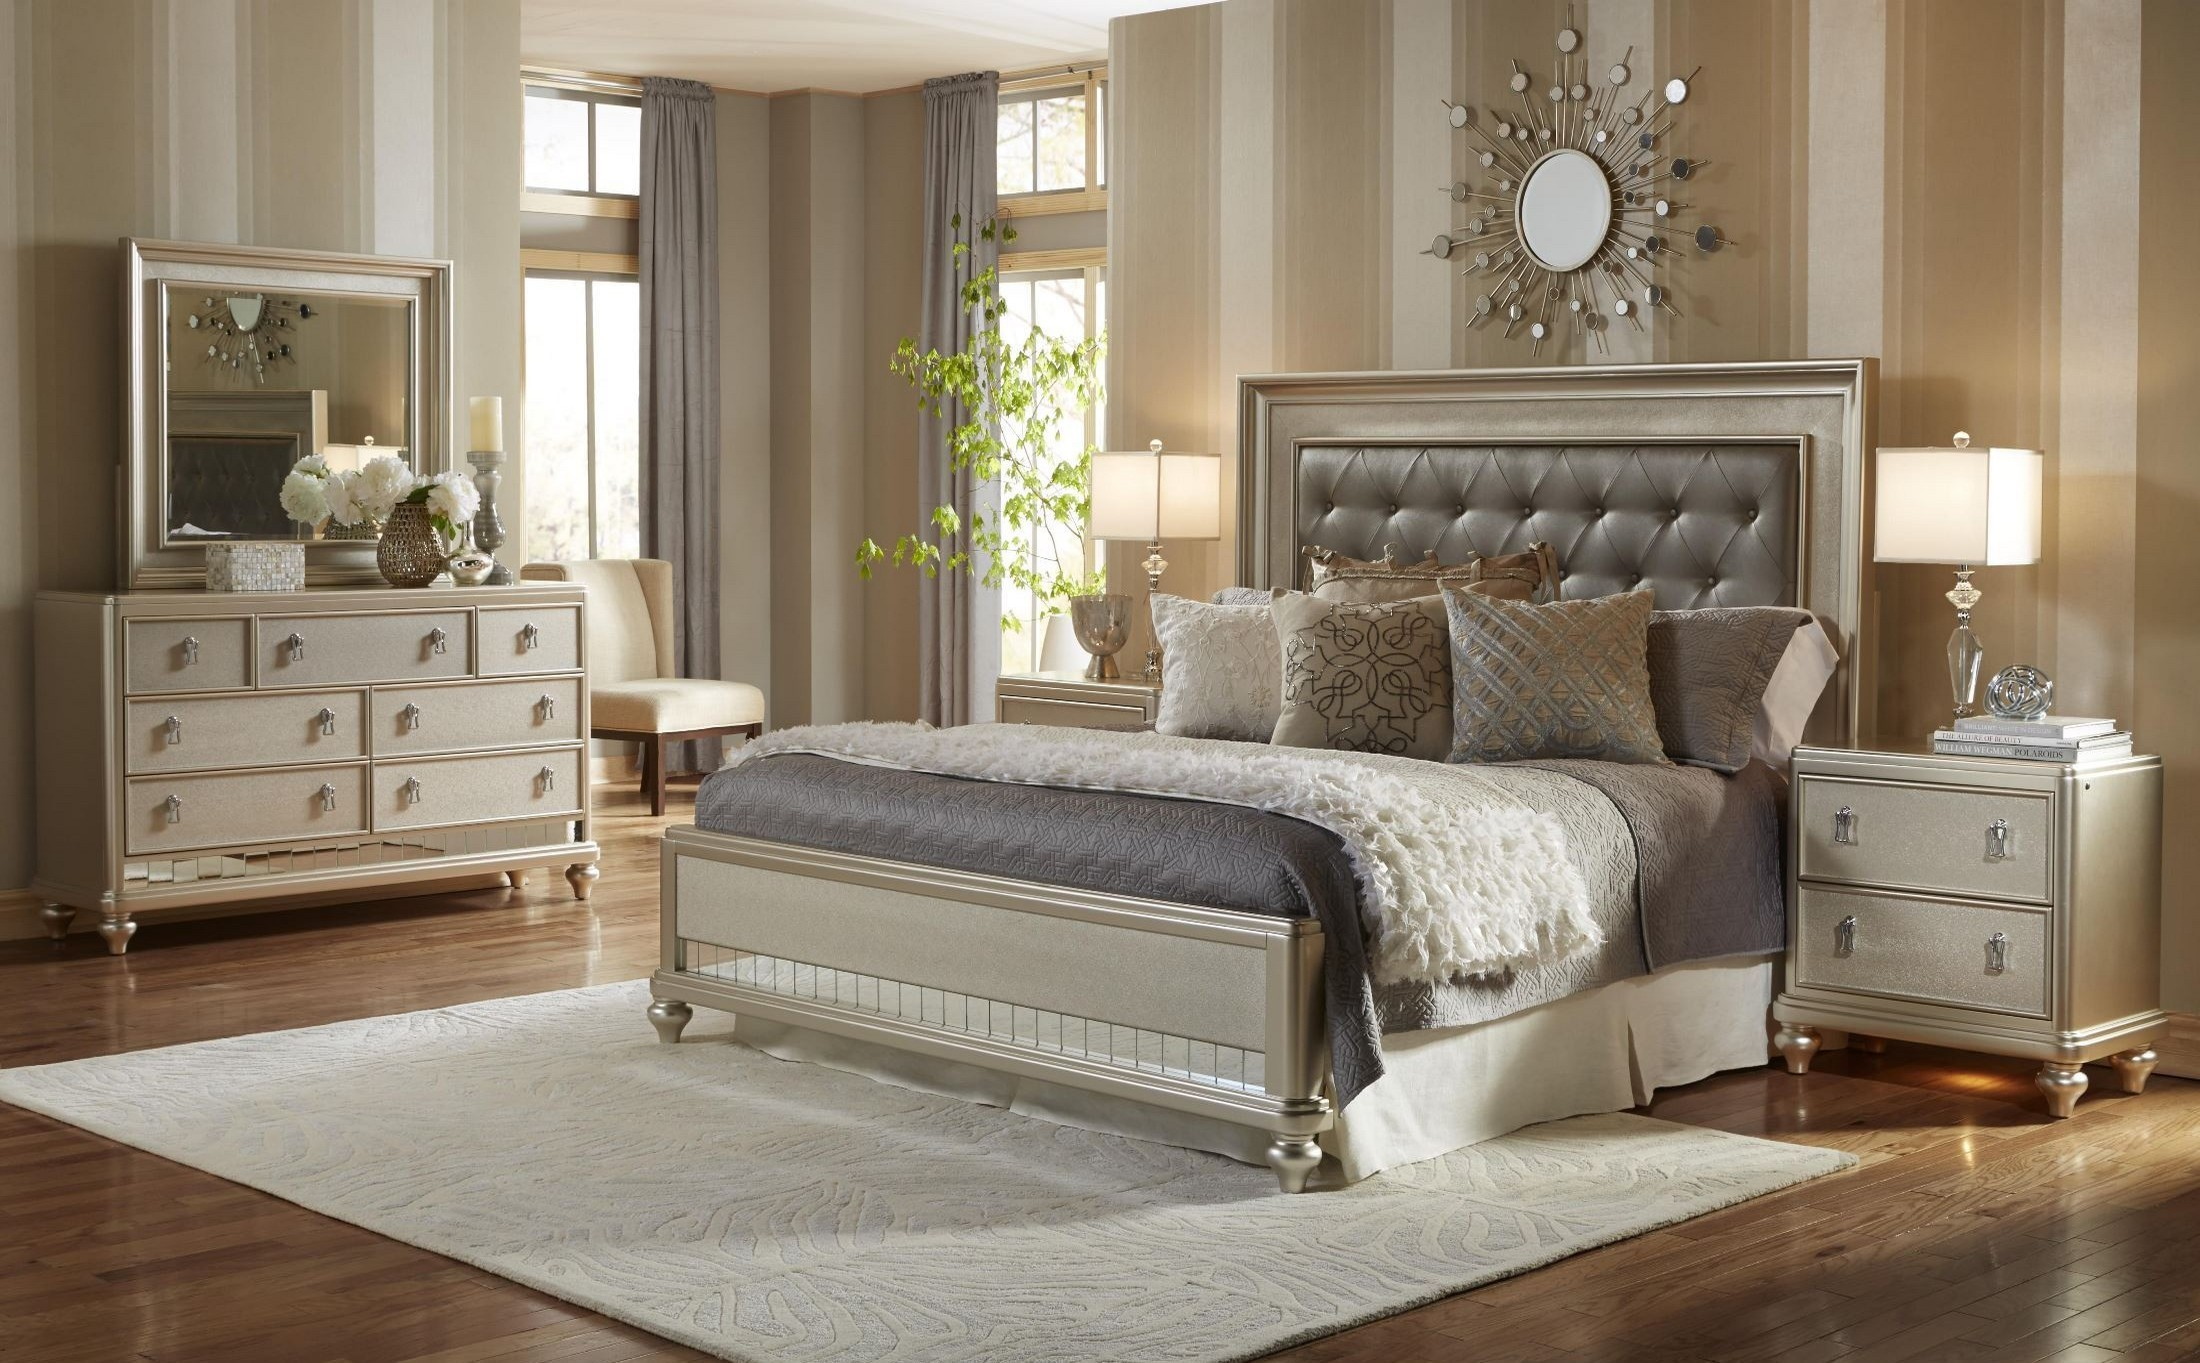 Bedroom sets coleman furniture - Diva Metallic Panel Bedroom Set